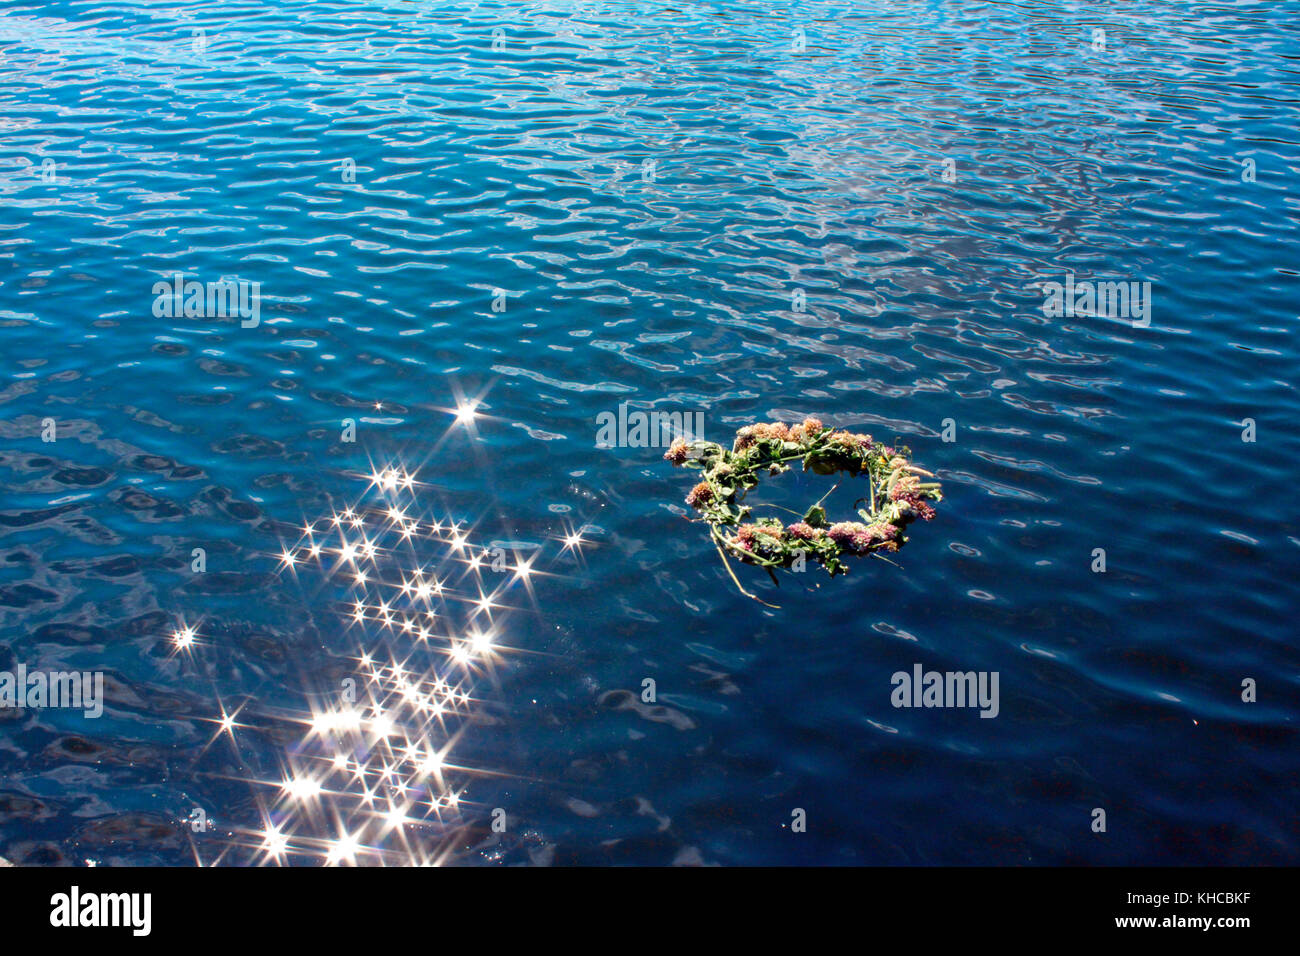 A Flower Crown Floating on Sparkling Water in the Heart of Summer in Sweden - Stock Image